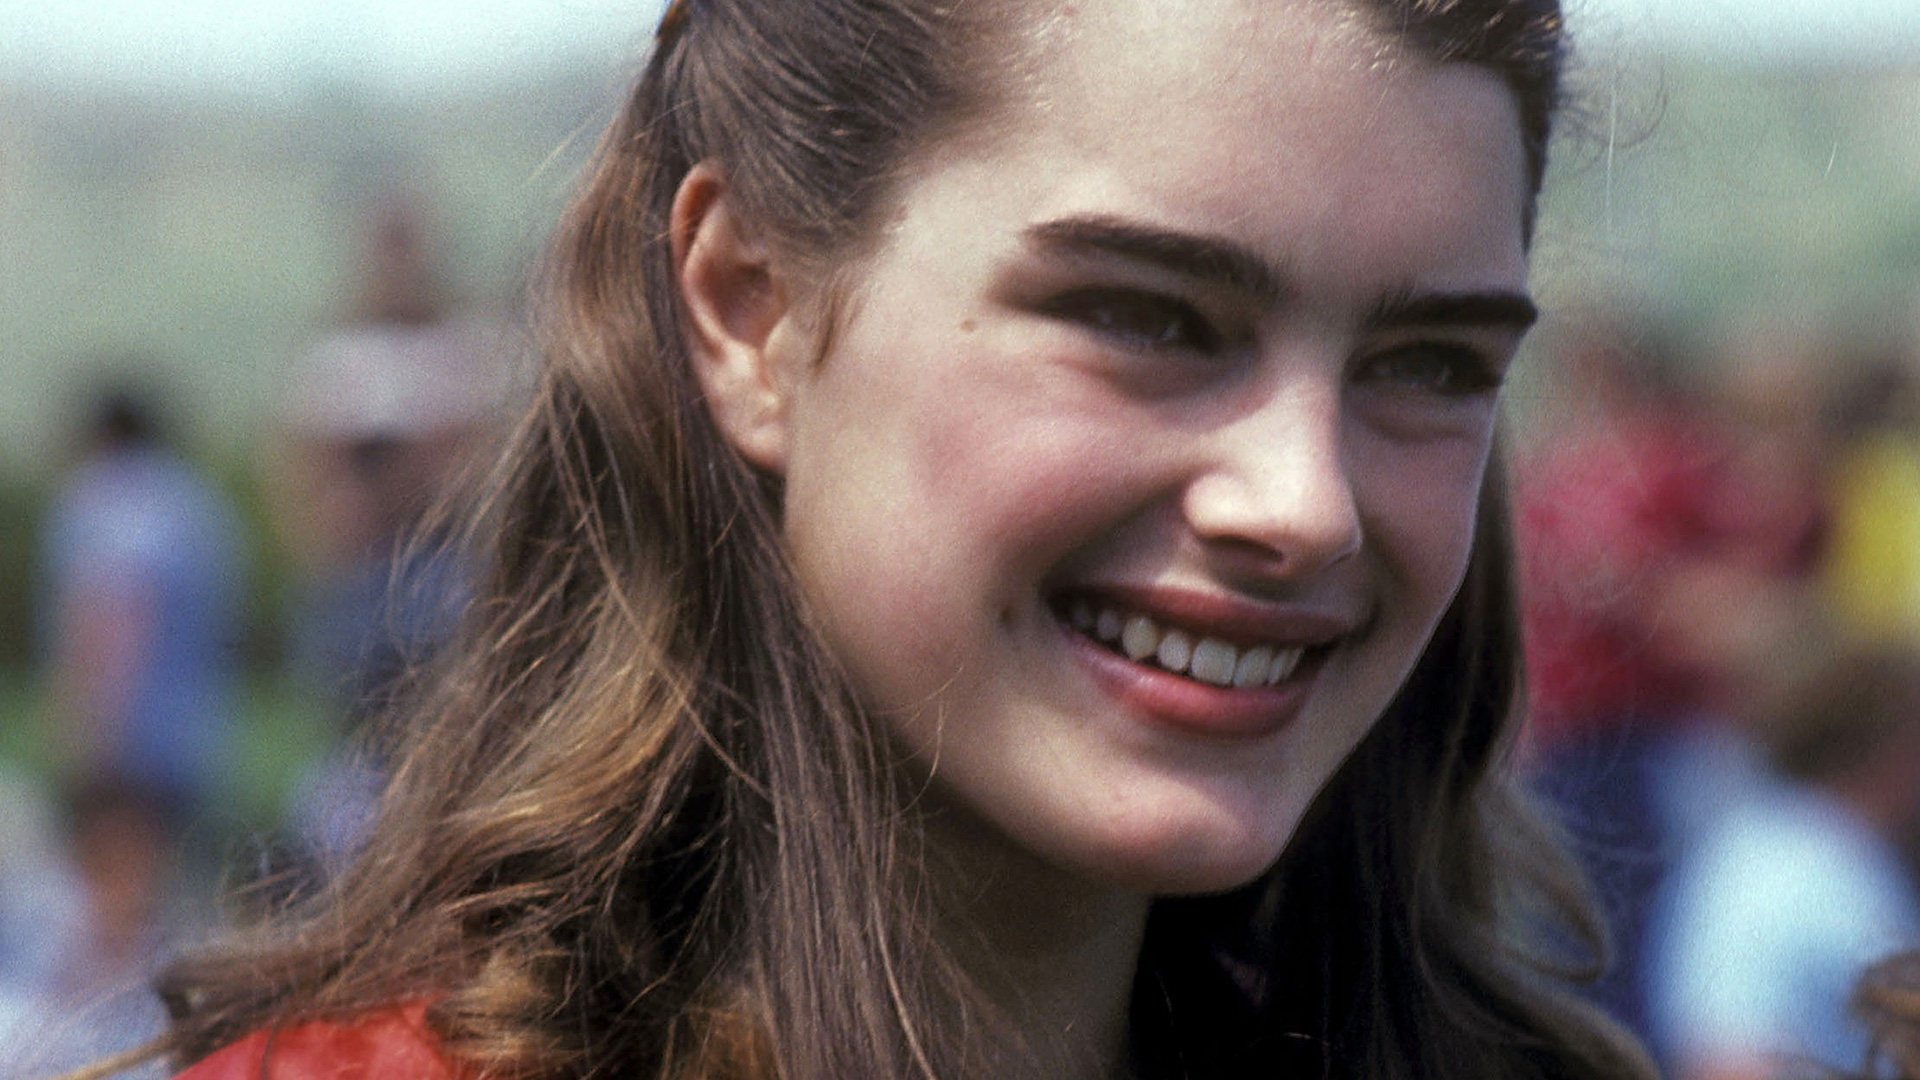 November 19, 1980: CBS Banned a Calvin Klein Jeans Ad Featuring Brooke Shields